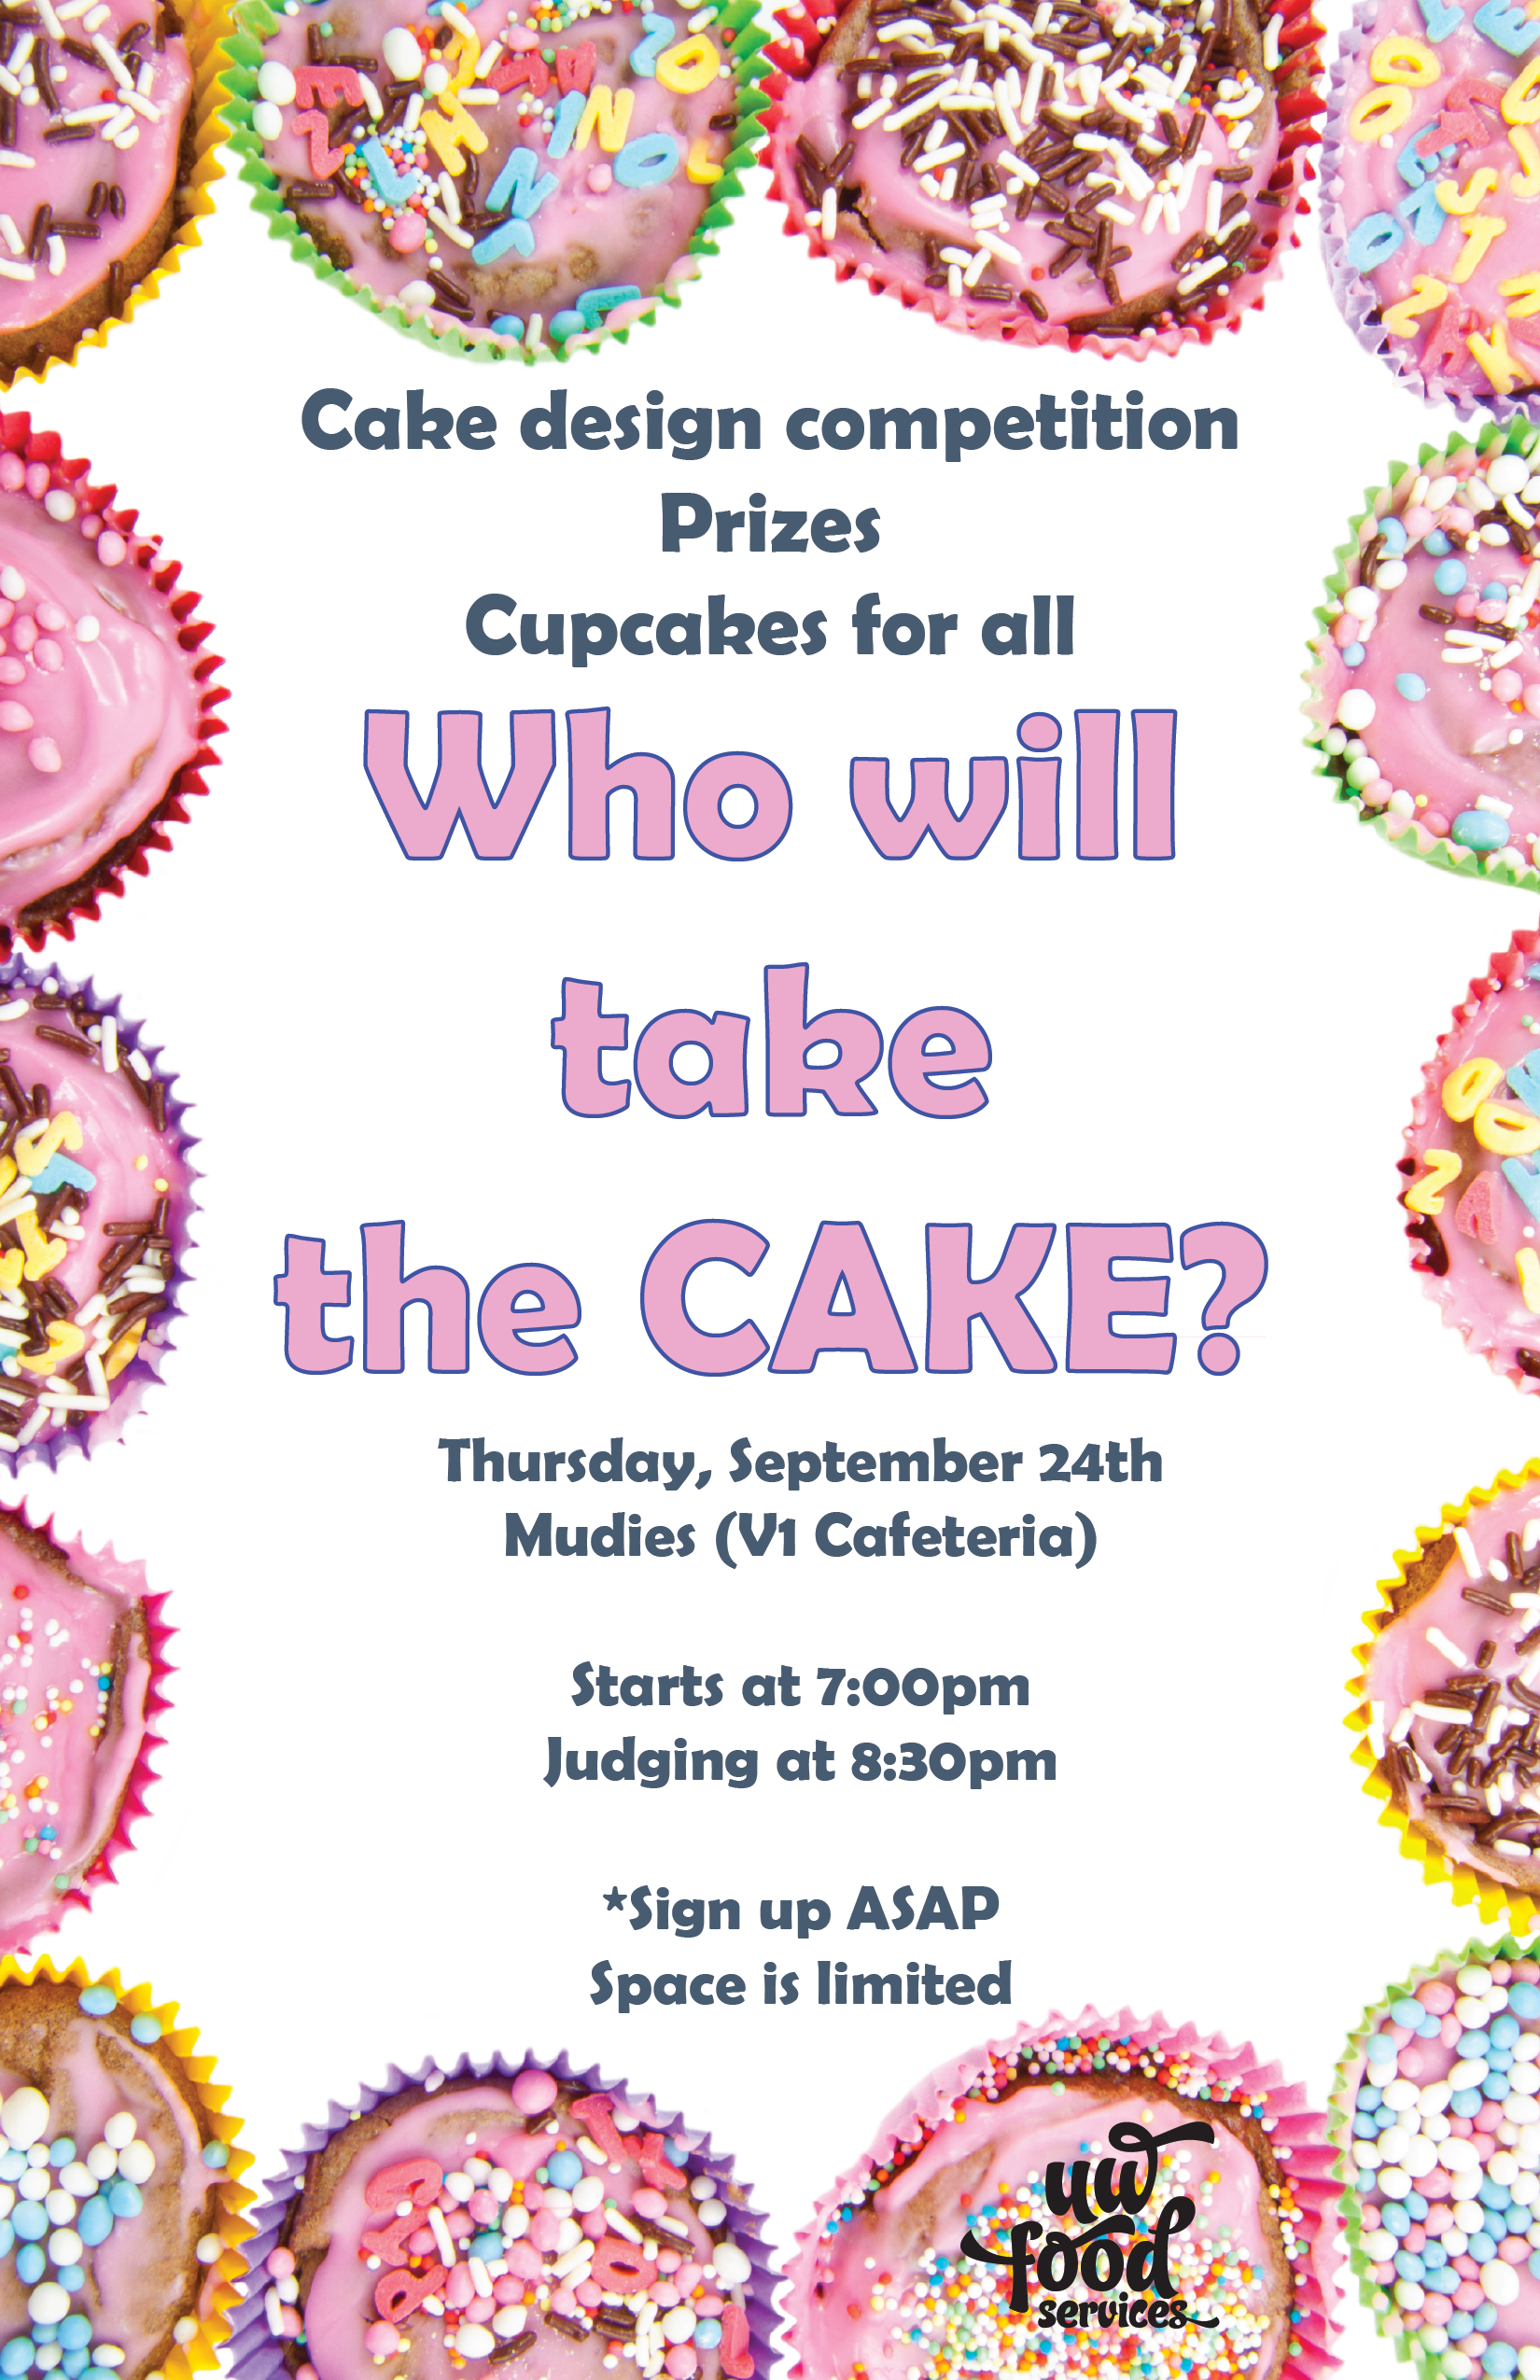 Who will take the cake?  Thursday, September 24th, 7:00pm Mudies V1 Caf